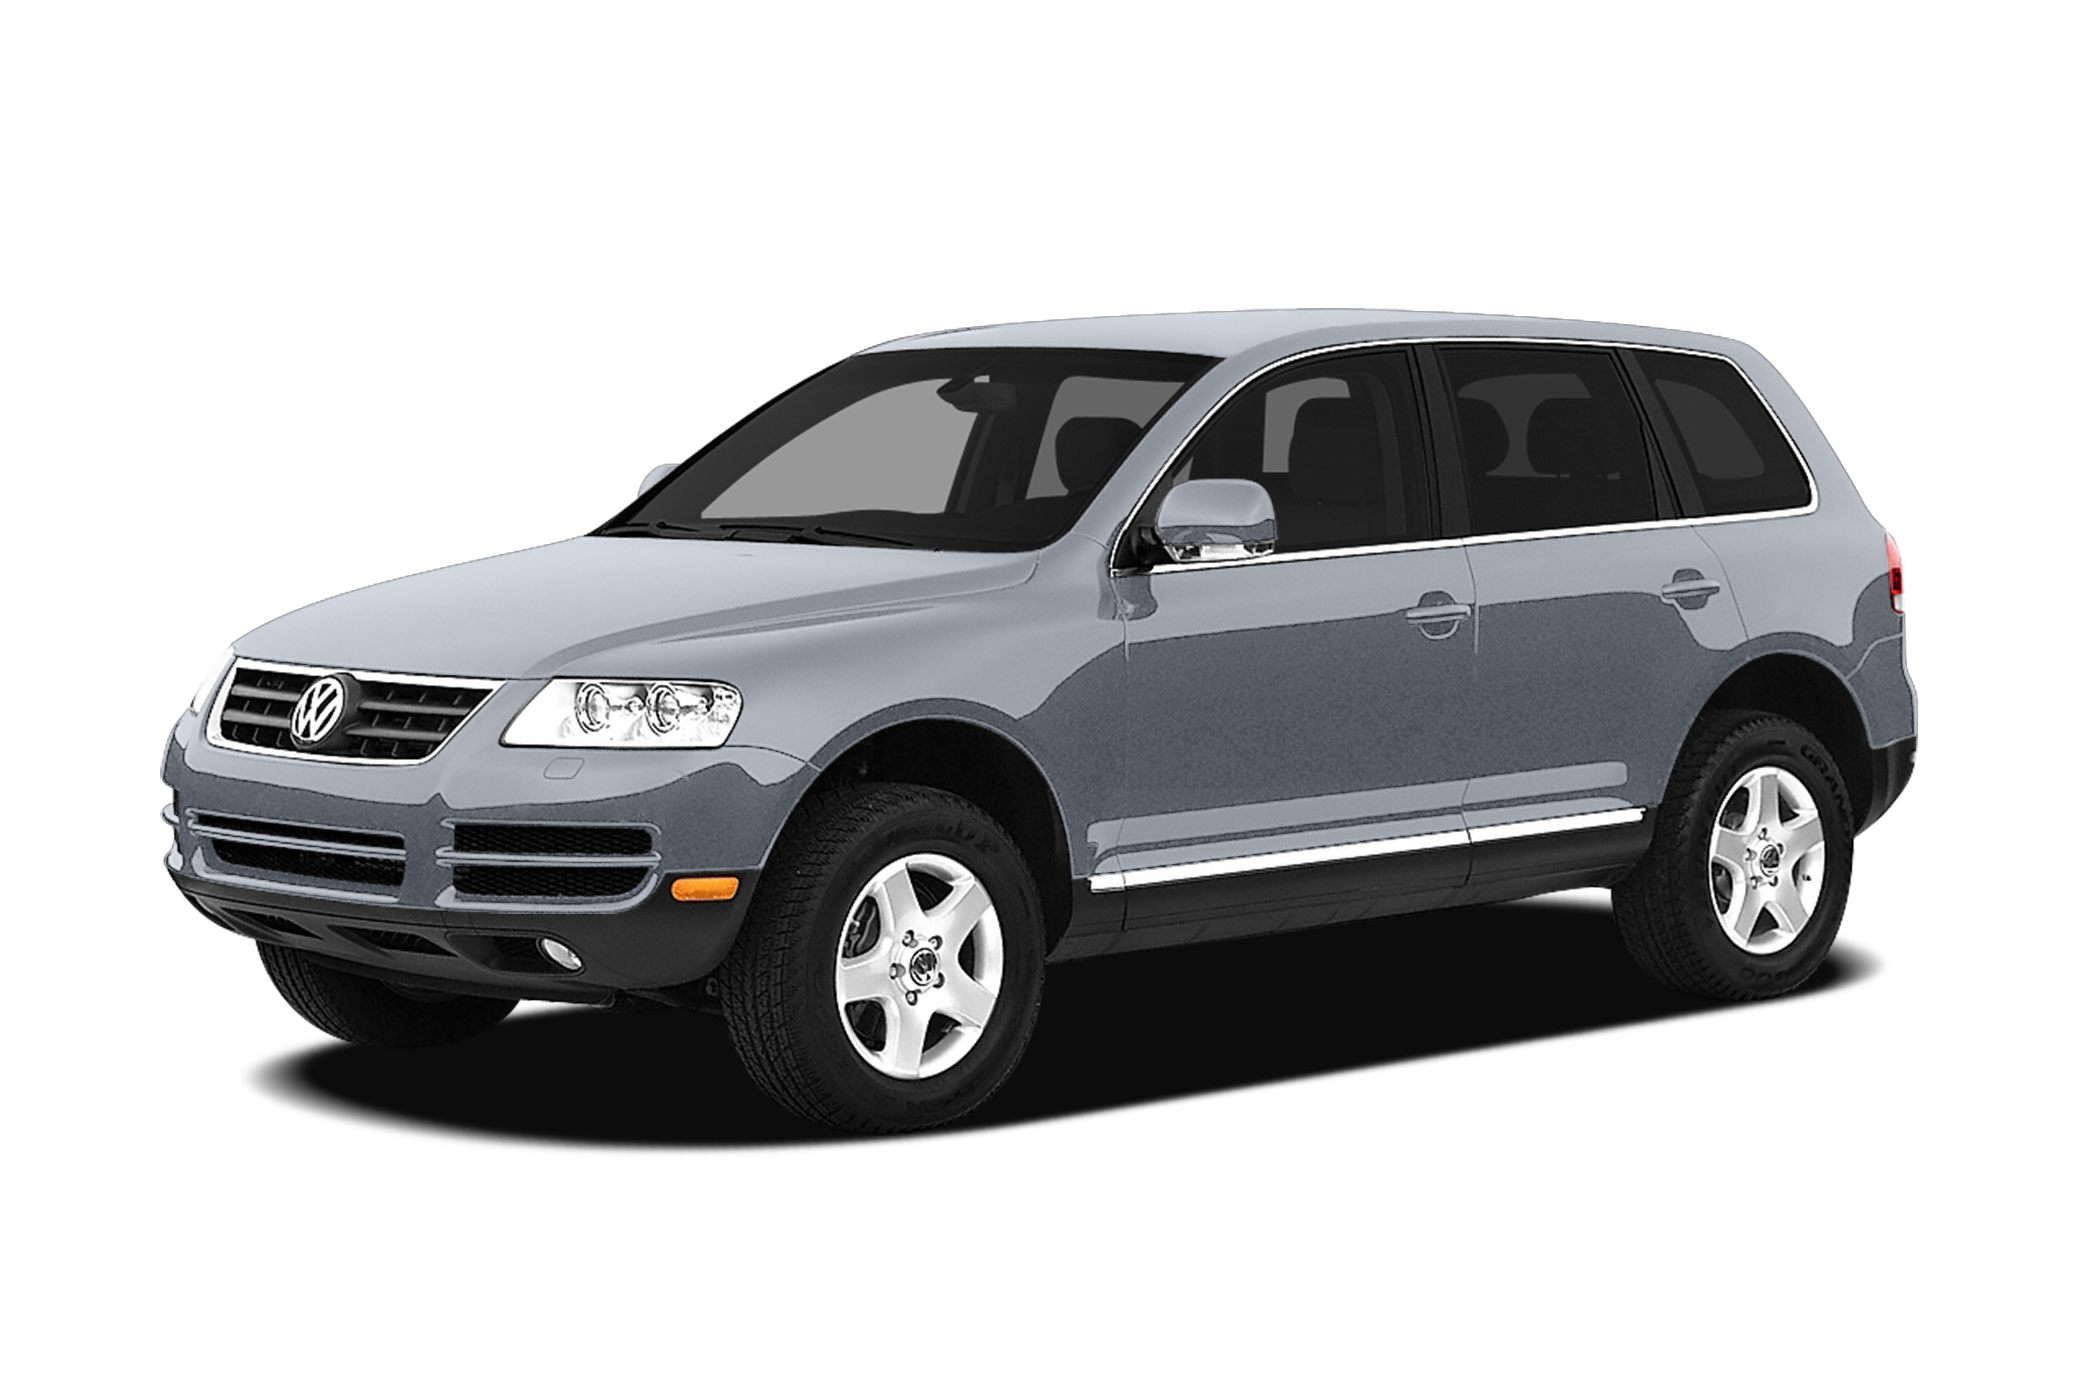 2004 Volkswagen Touareg V8 SUV for sale in Jacksonville for $8,500 with 110,931 miles.